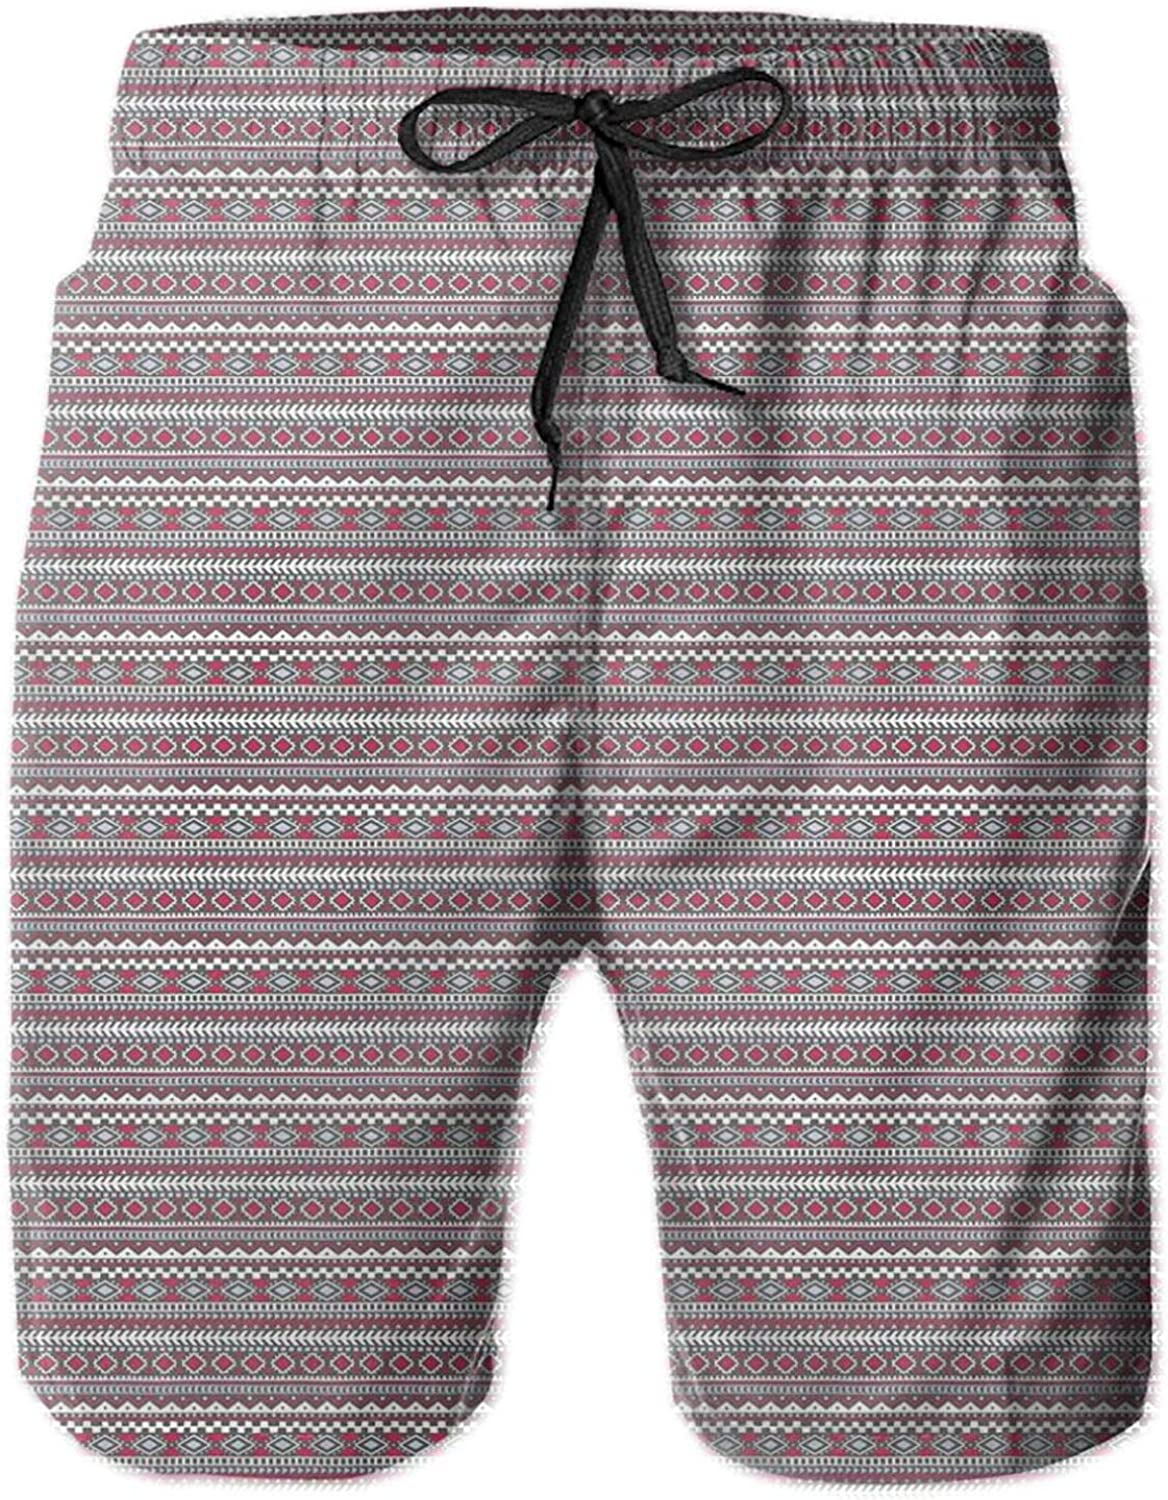 Pattern in Bohemian Style with Ethnic Motifs Geometric Design Pink and Grey Mens Swim Shorts Casual Workout Short Pants Drawstring Beach Shorts,XXL